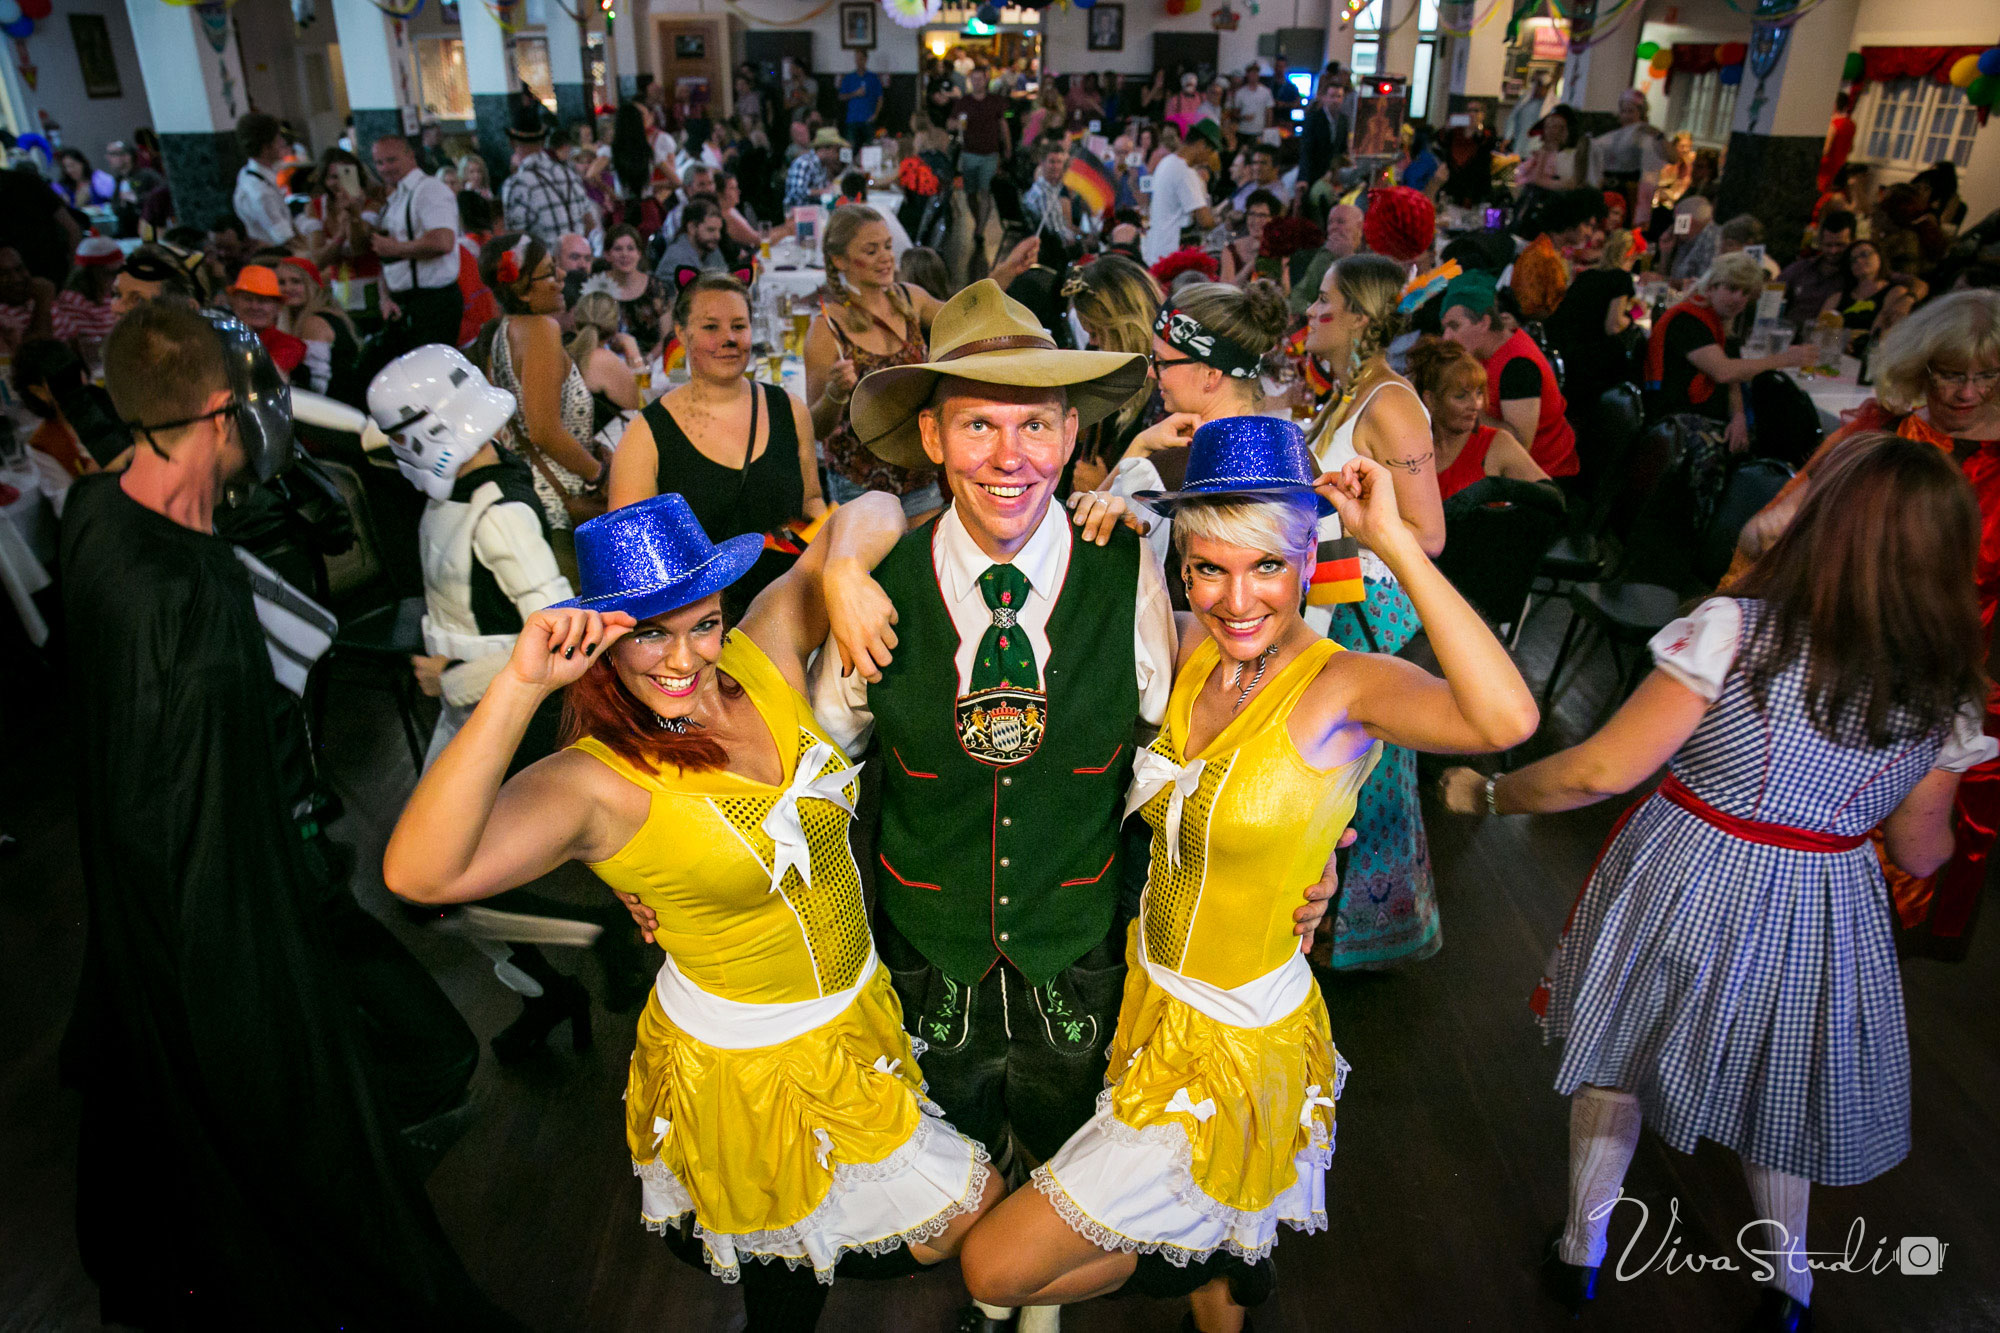 VivaStudio_Design_Photograpphy_Brisbane_German_Club_Stammtisch_Karneval0474